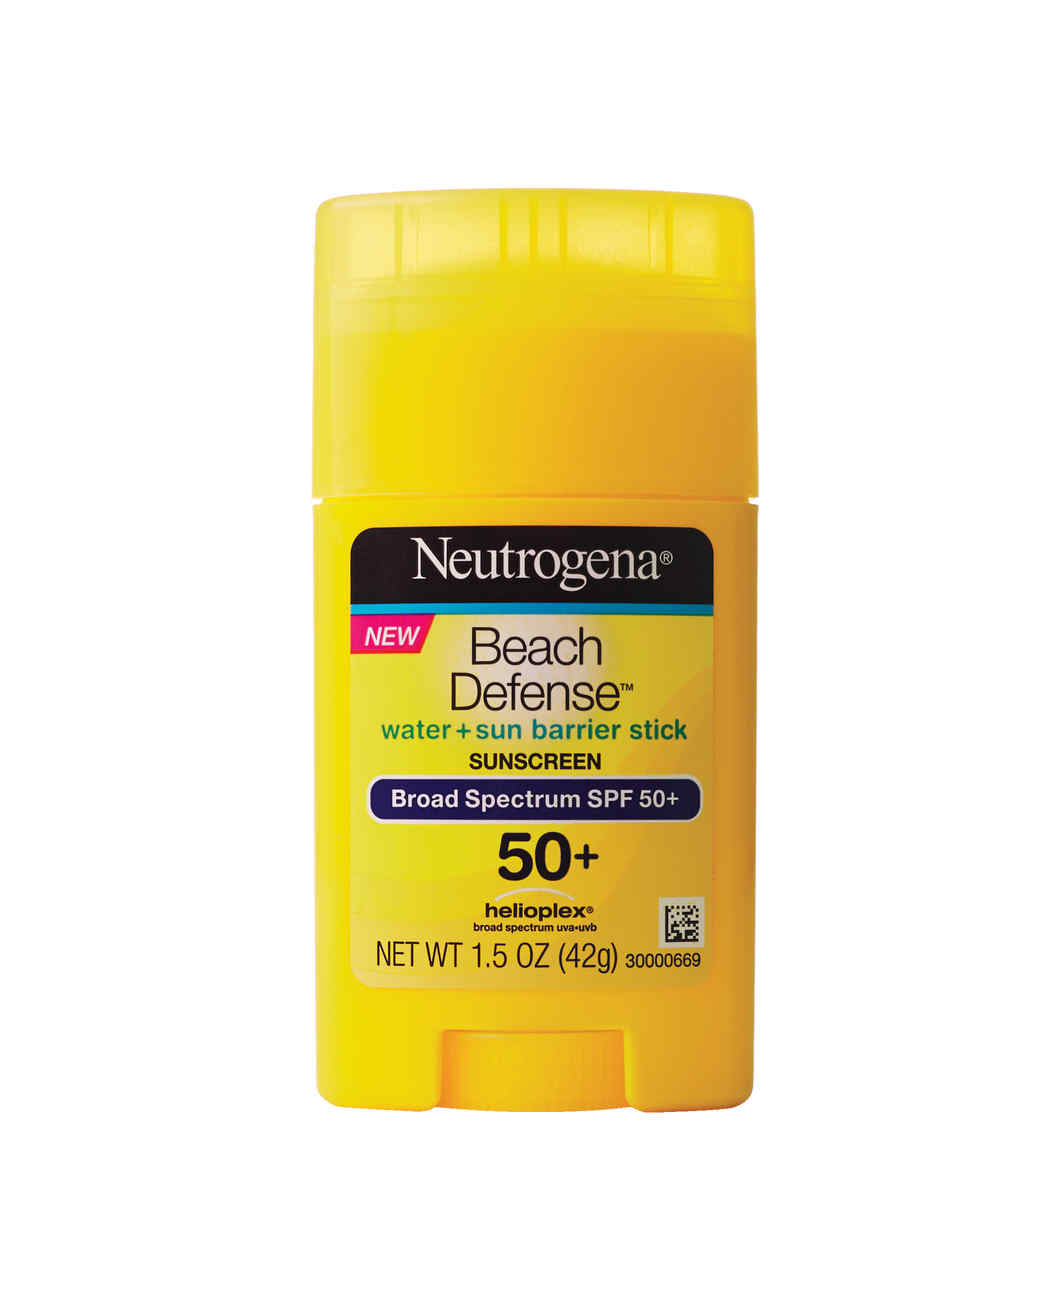 neutrogena-sunscreen-027-d111082.jpg